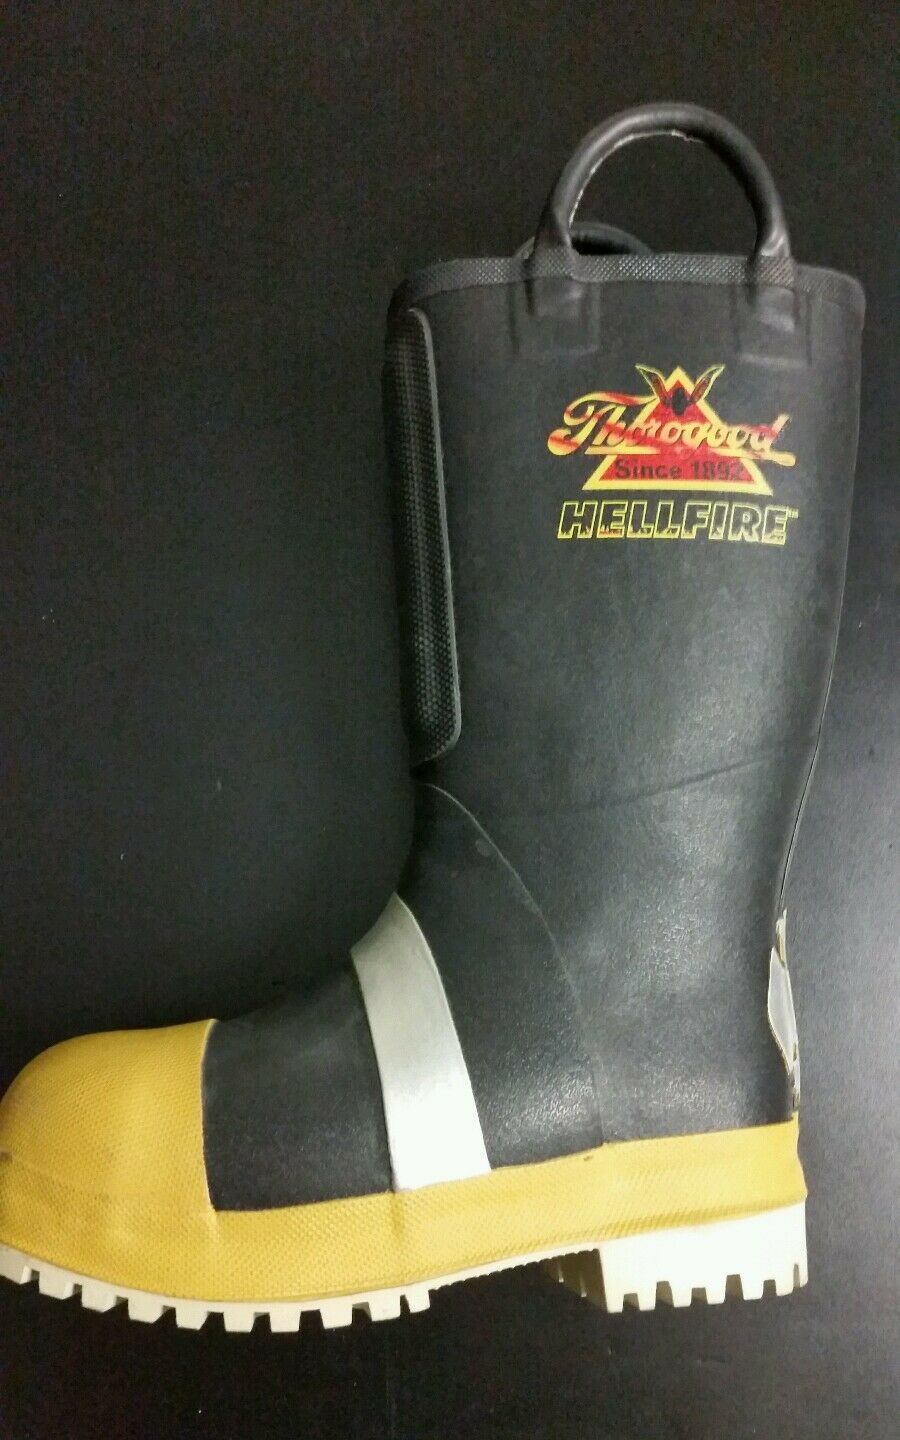 THgoldGOOD HELLFIRE BOOTS RUBBER INSULATED FELT WITH LUG SOLE